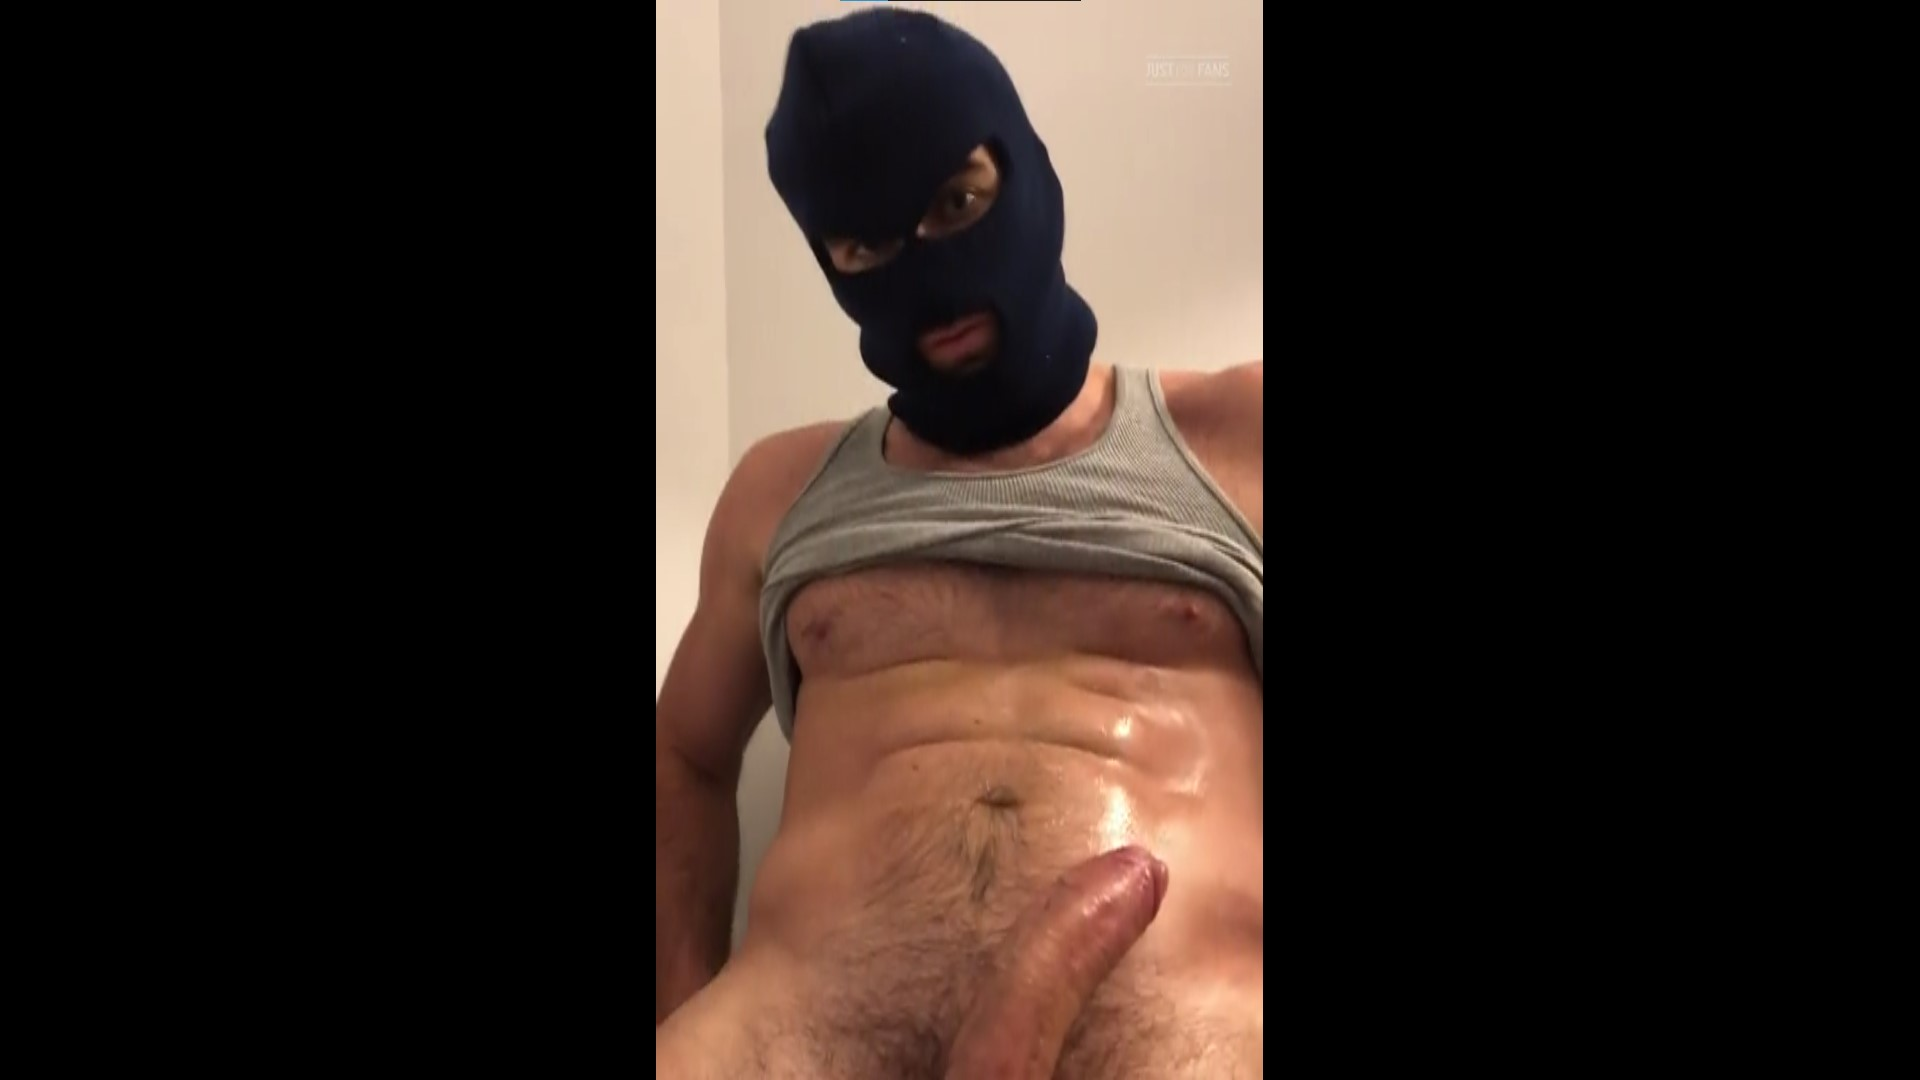 Wearing a mask while getting a handjob - Woody Fox